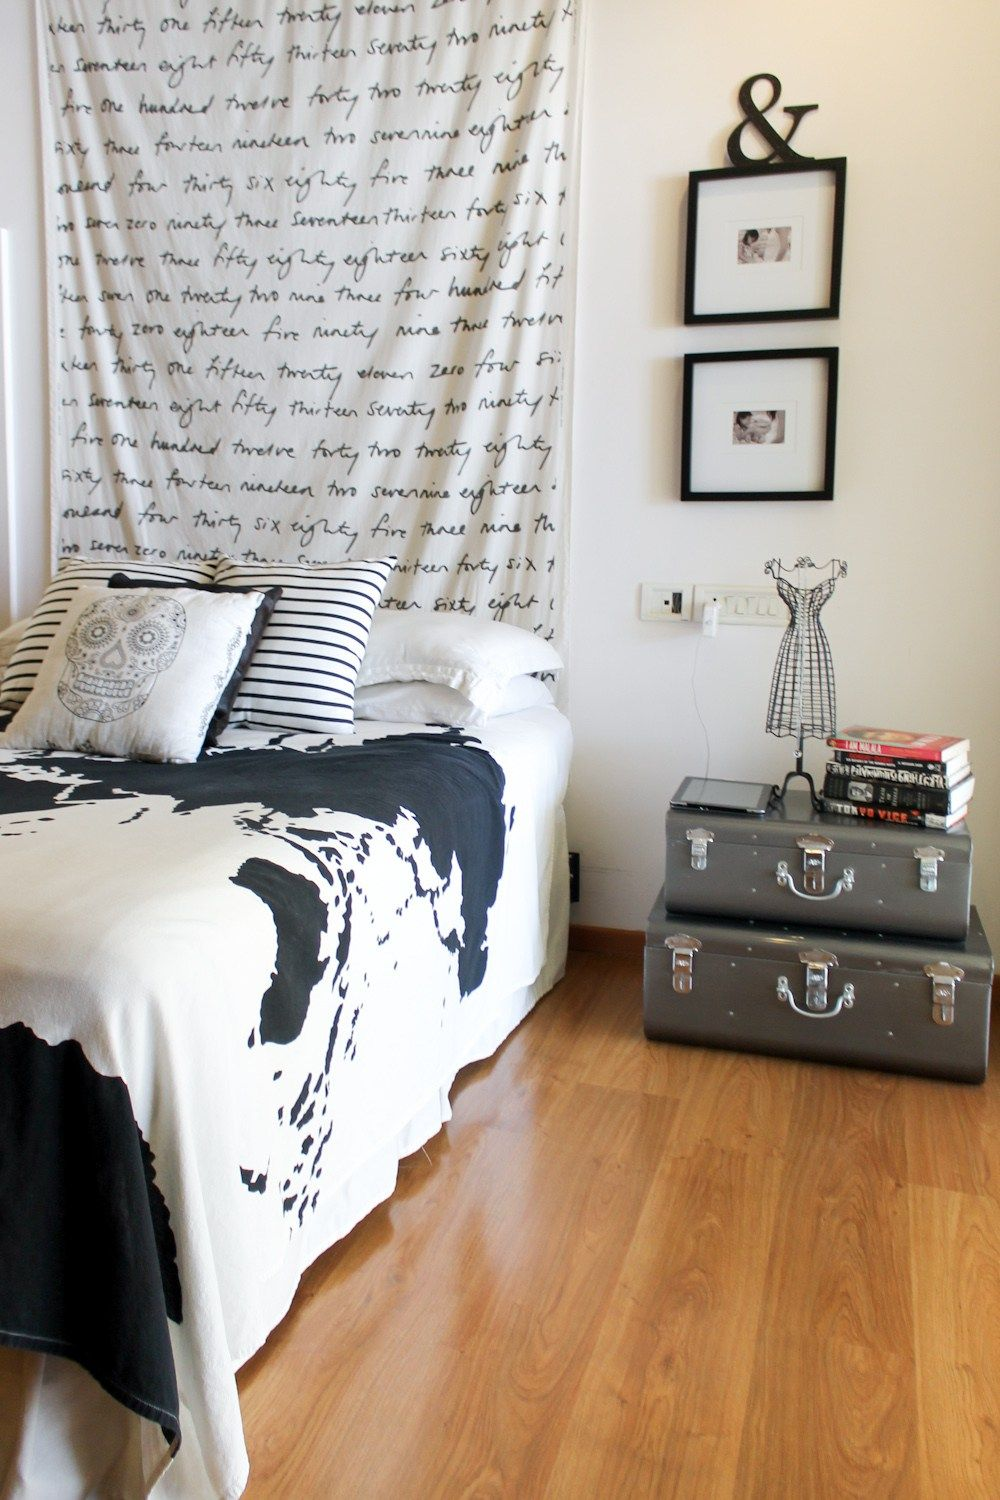 Black white bedroom with ikea fabric urban outfitters world map black white bedroom with ikea fabric urban outfitters world map tapestry indian metal trunks gumiabroncs Choice Image